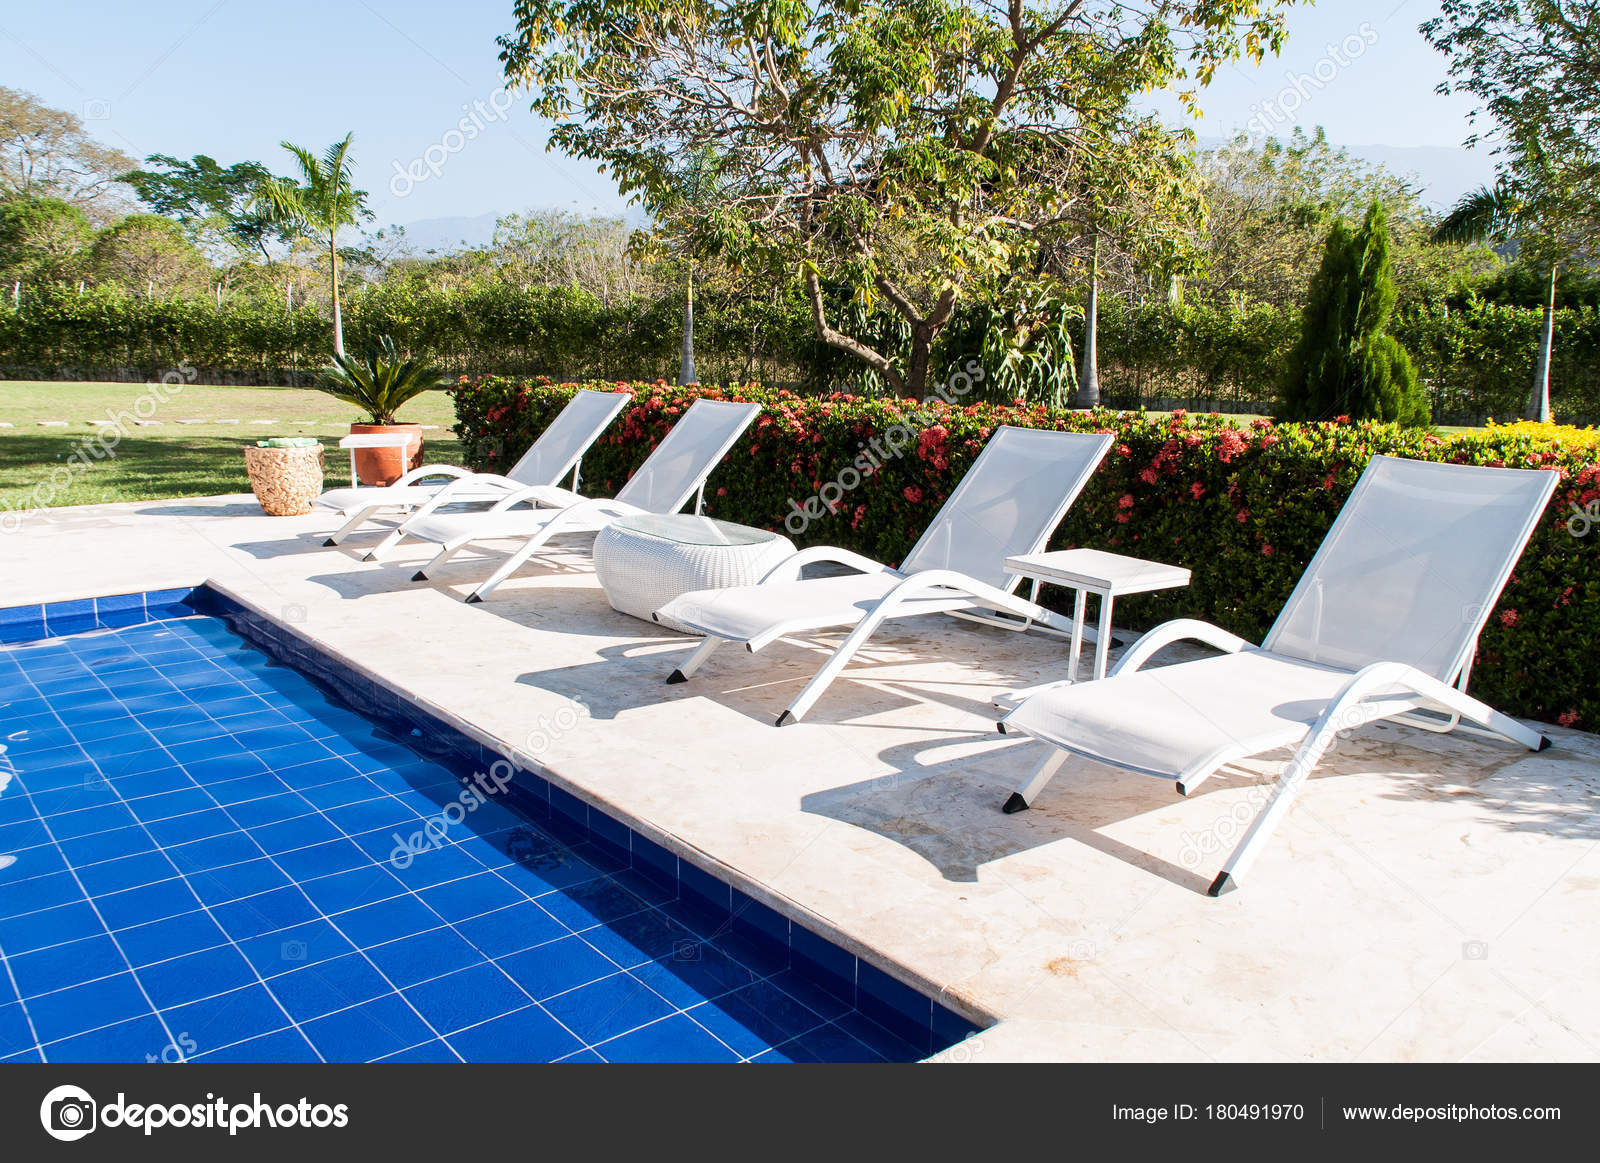 Chairs For Pool Sun Chairs Pool Stock Photo Gonzalocallefotografia Gmail